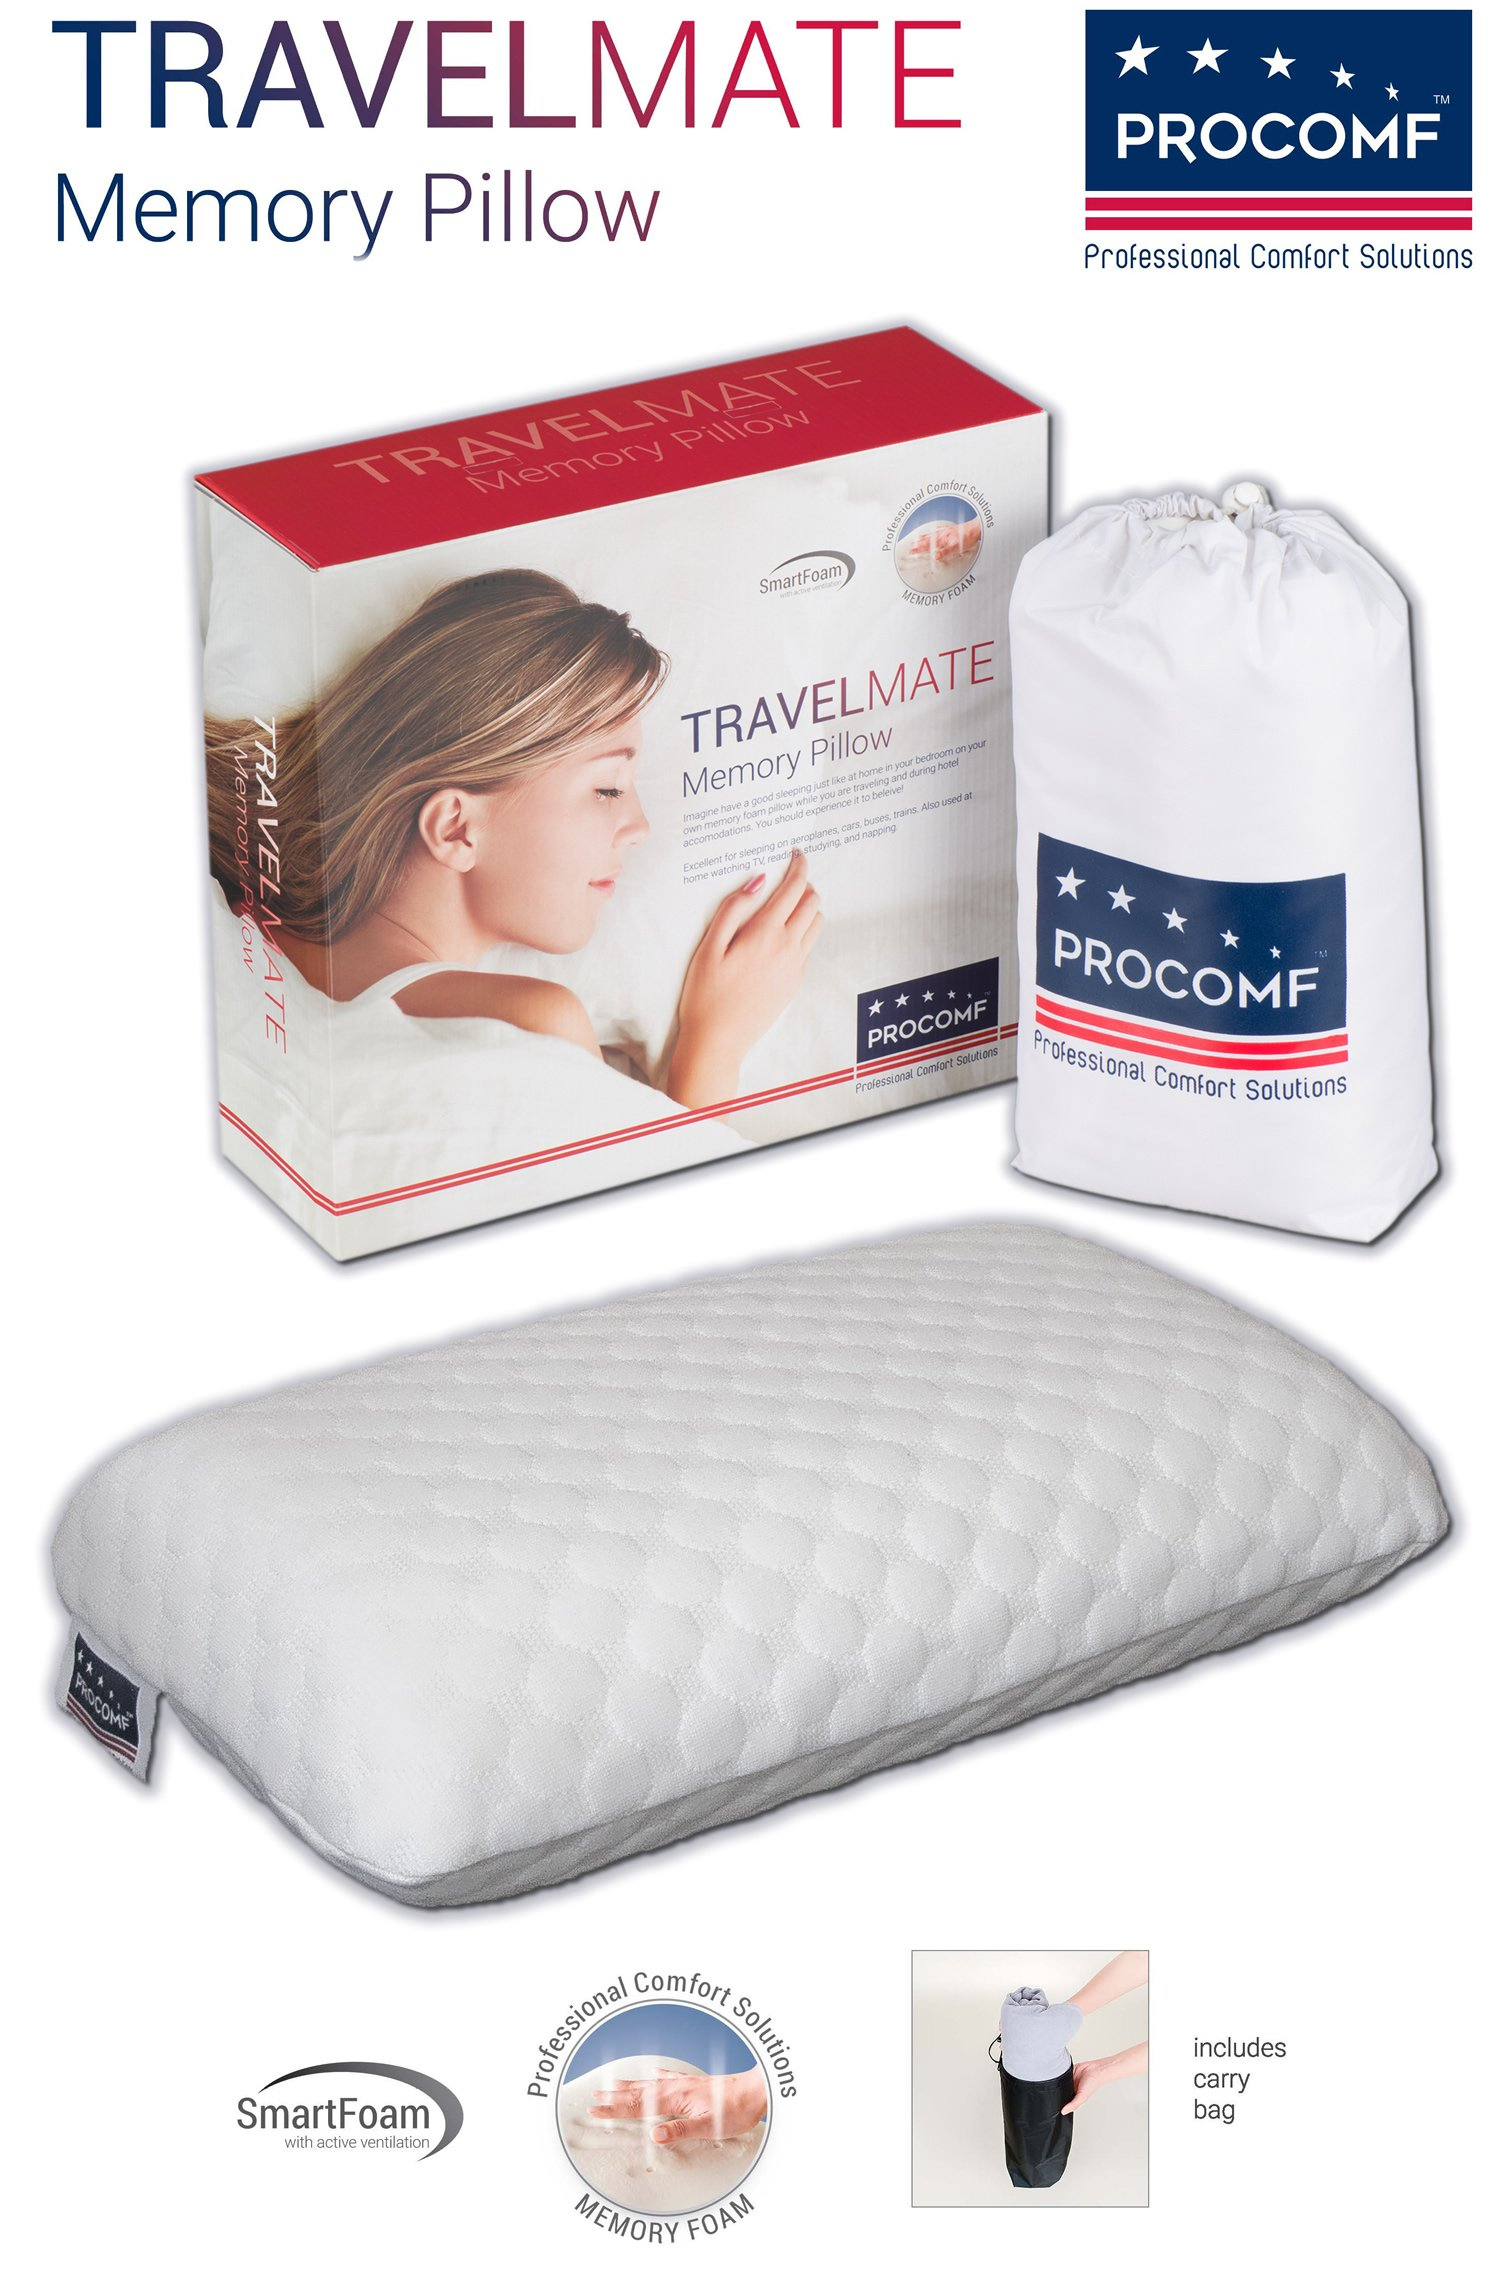 VISCO LOVE ProComf Travel Mate/Baby/Kid's/Teen's Memory Foam Pillow